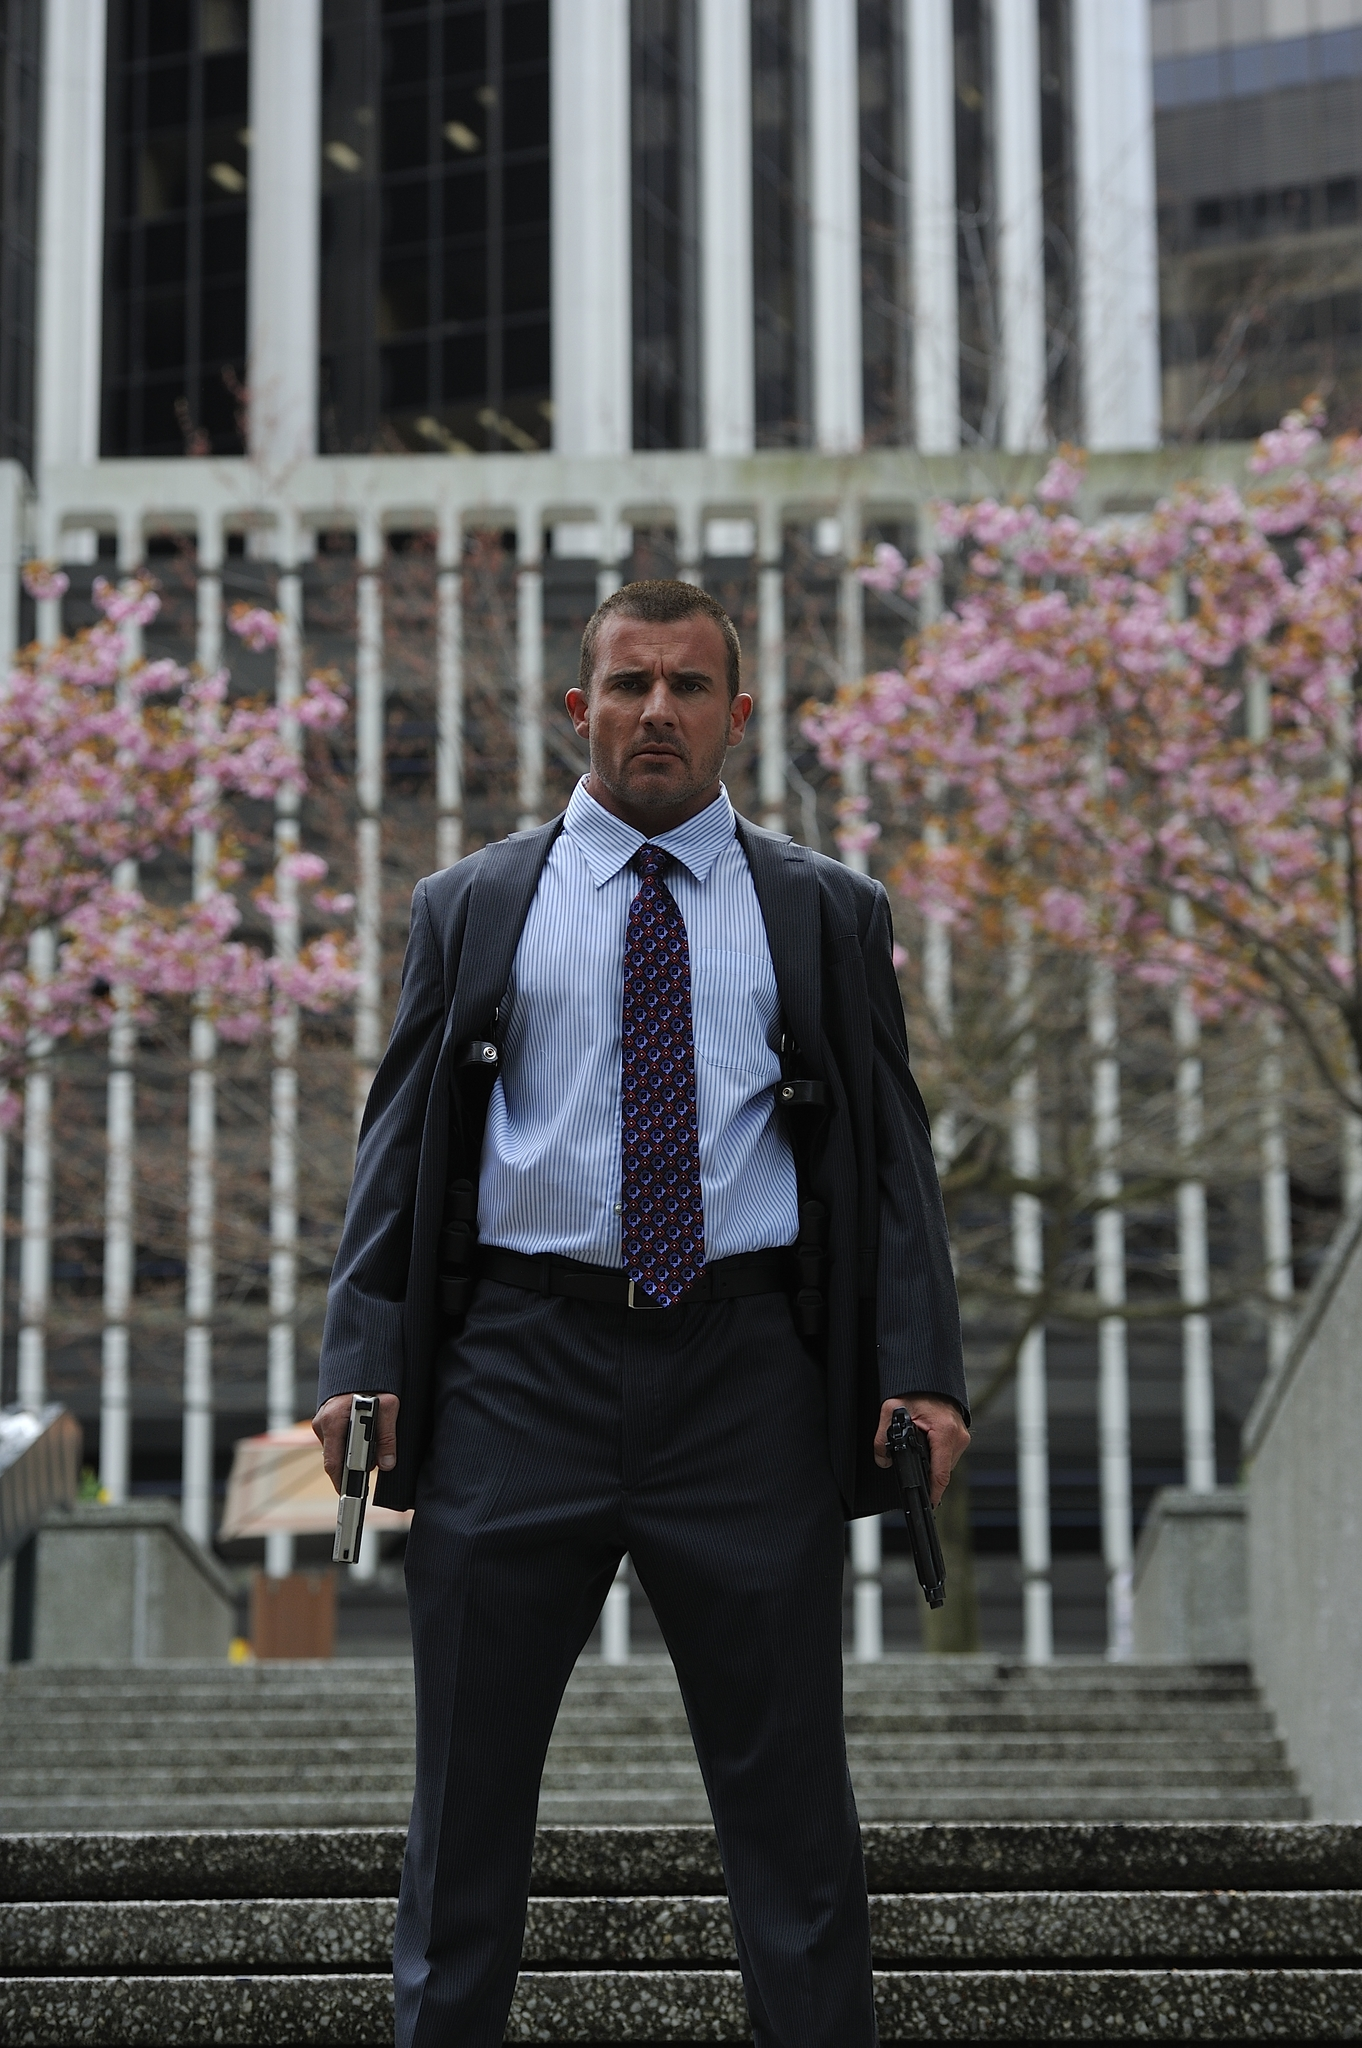 Dominic Purcell in Bailout: The Age of Greed (2013)